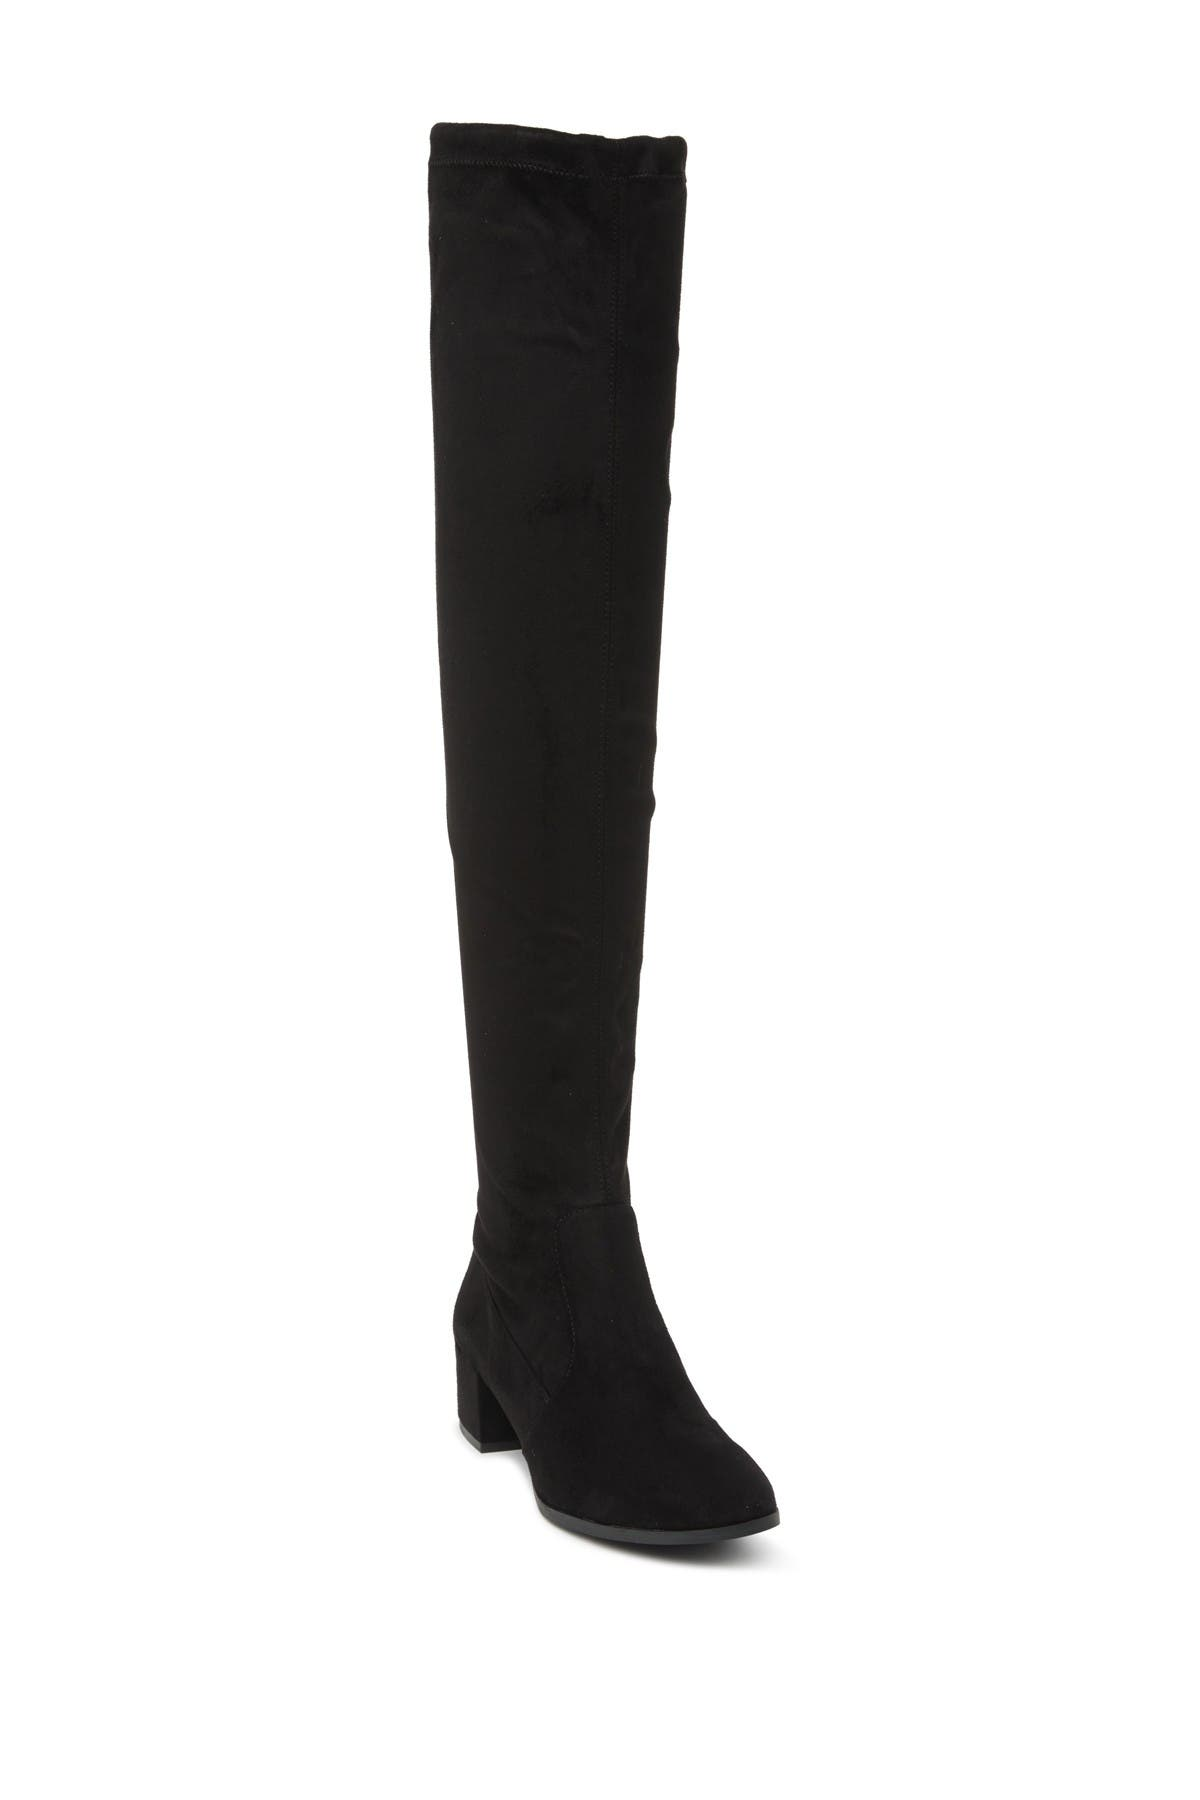 Image of Chinese Laundry Mystical Over-the-Knee Boot